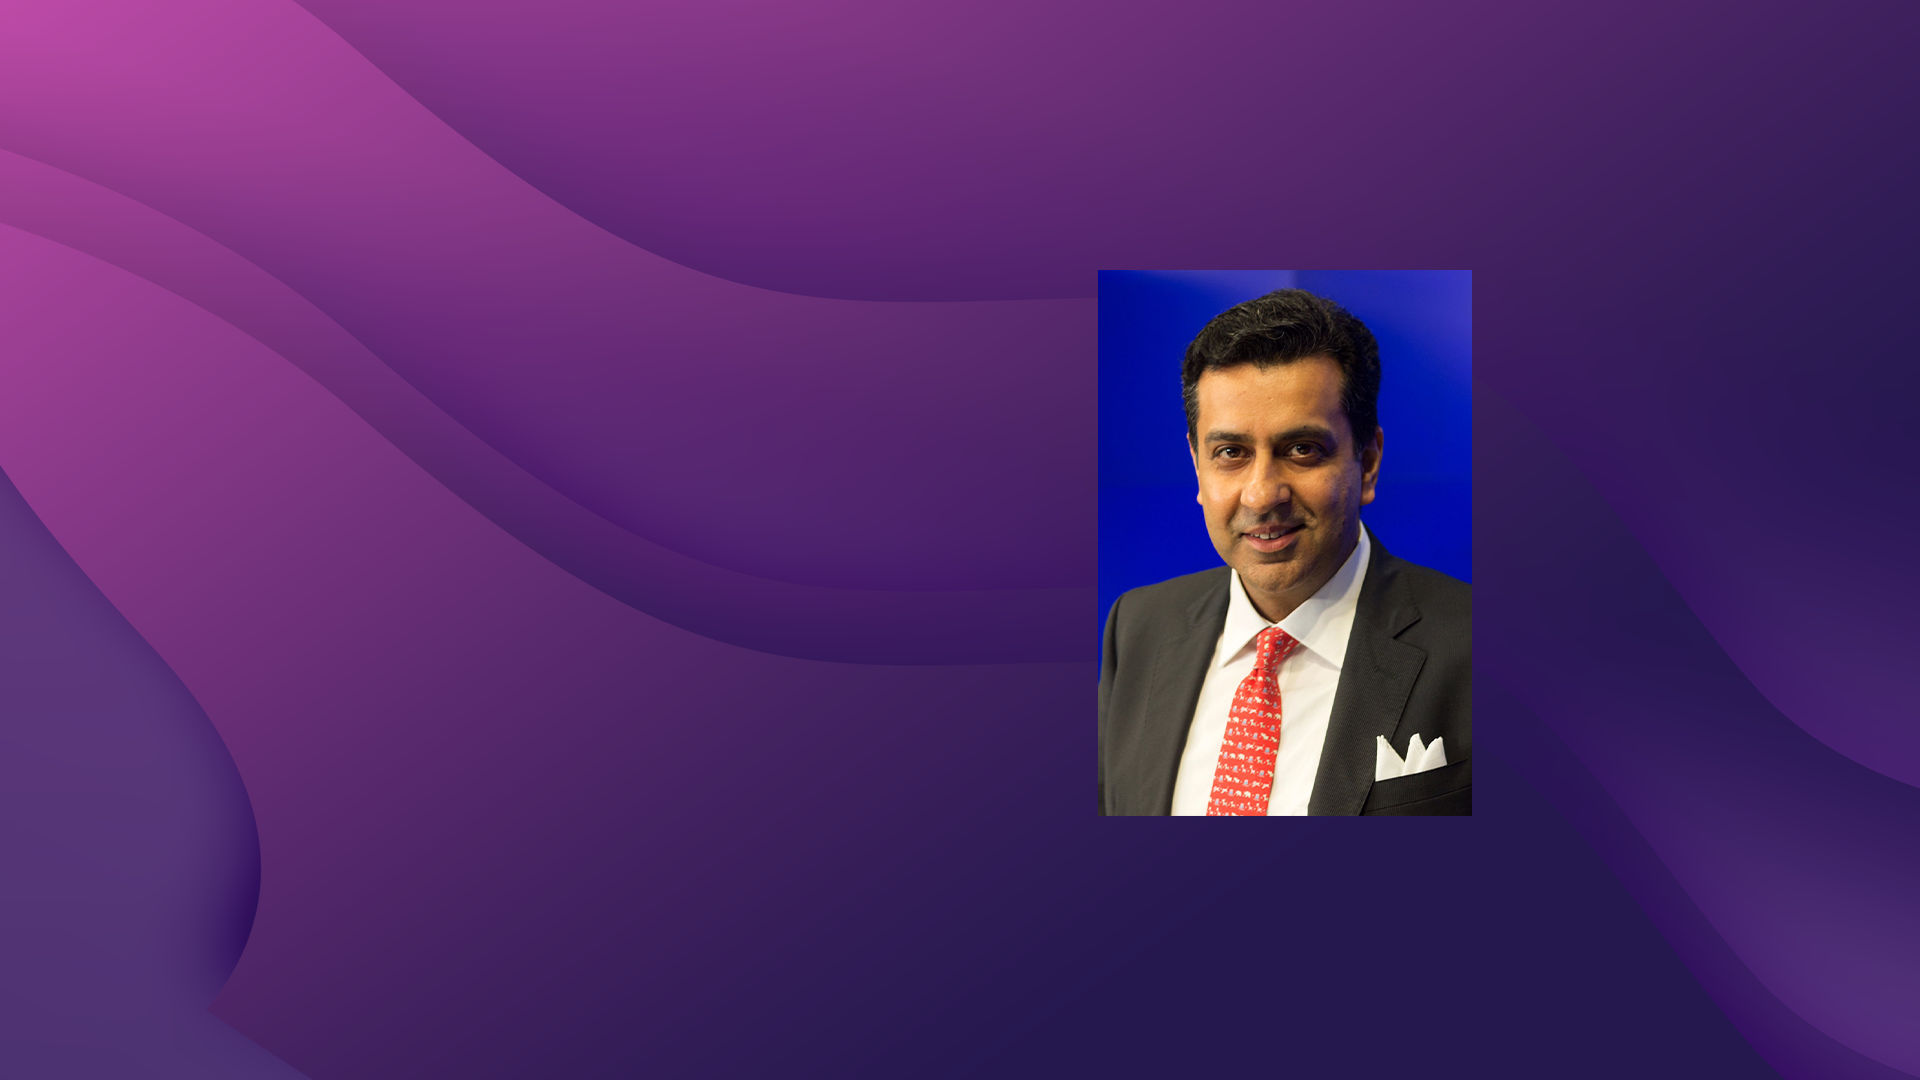 1310: Transformation in Times of Crisis With Mphasis CEO Nitin Rakesh